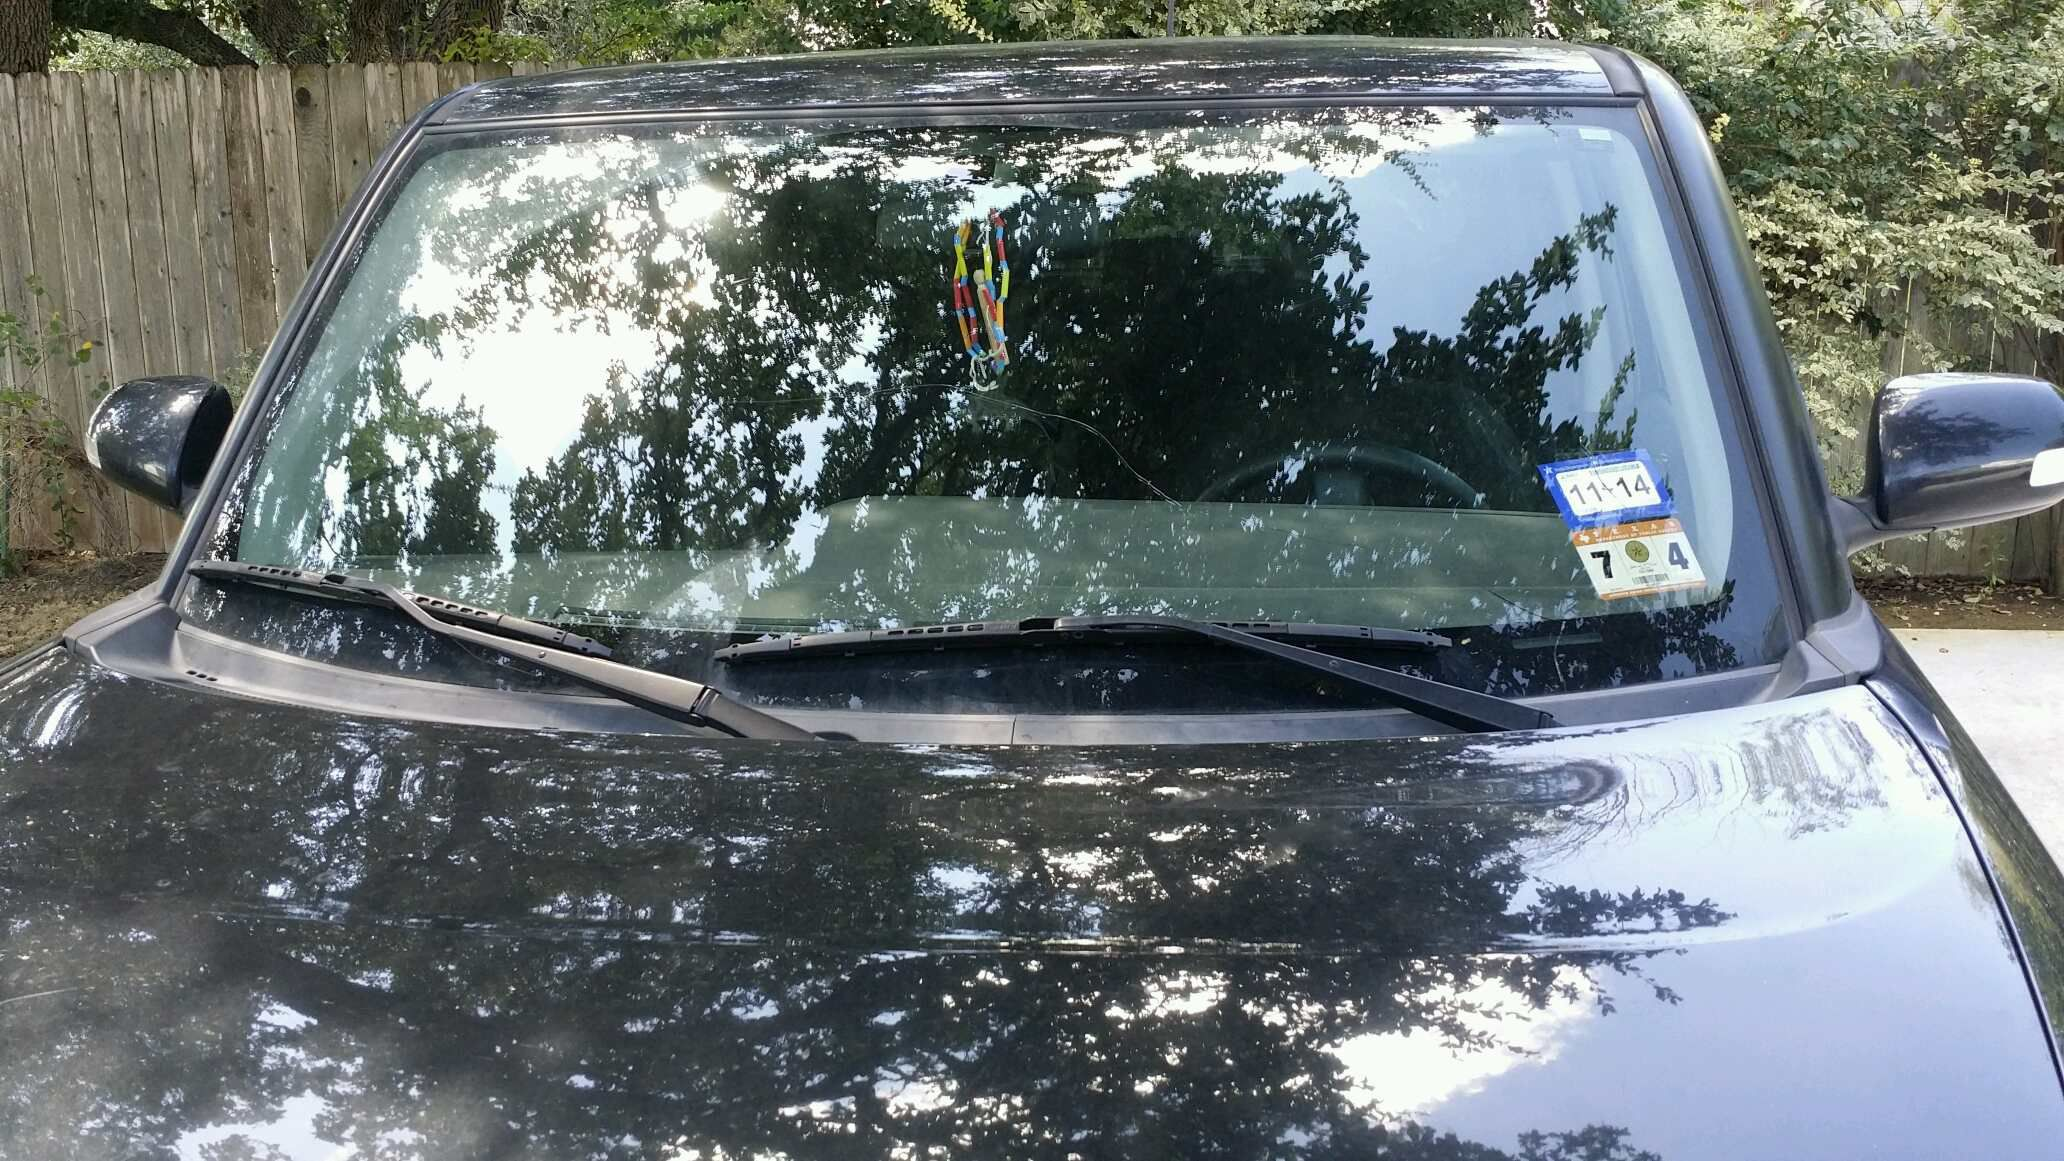 Scion windshield replacement prices local auto glass quotes for Car window motor replacement cost